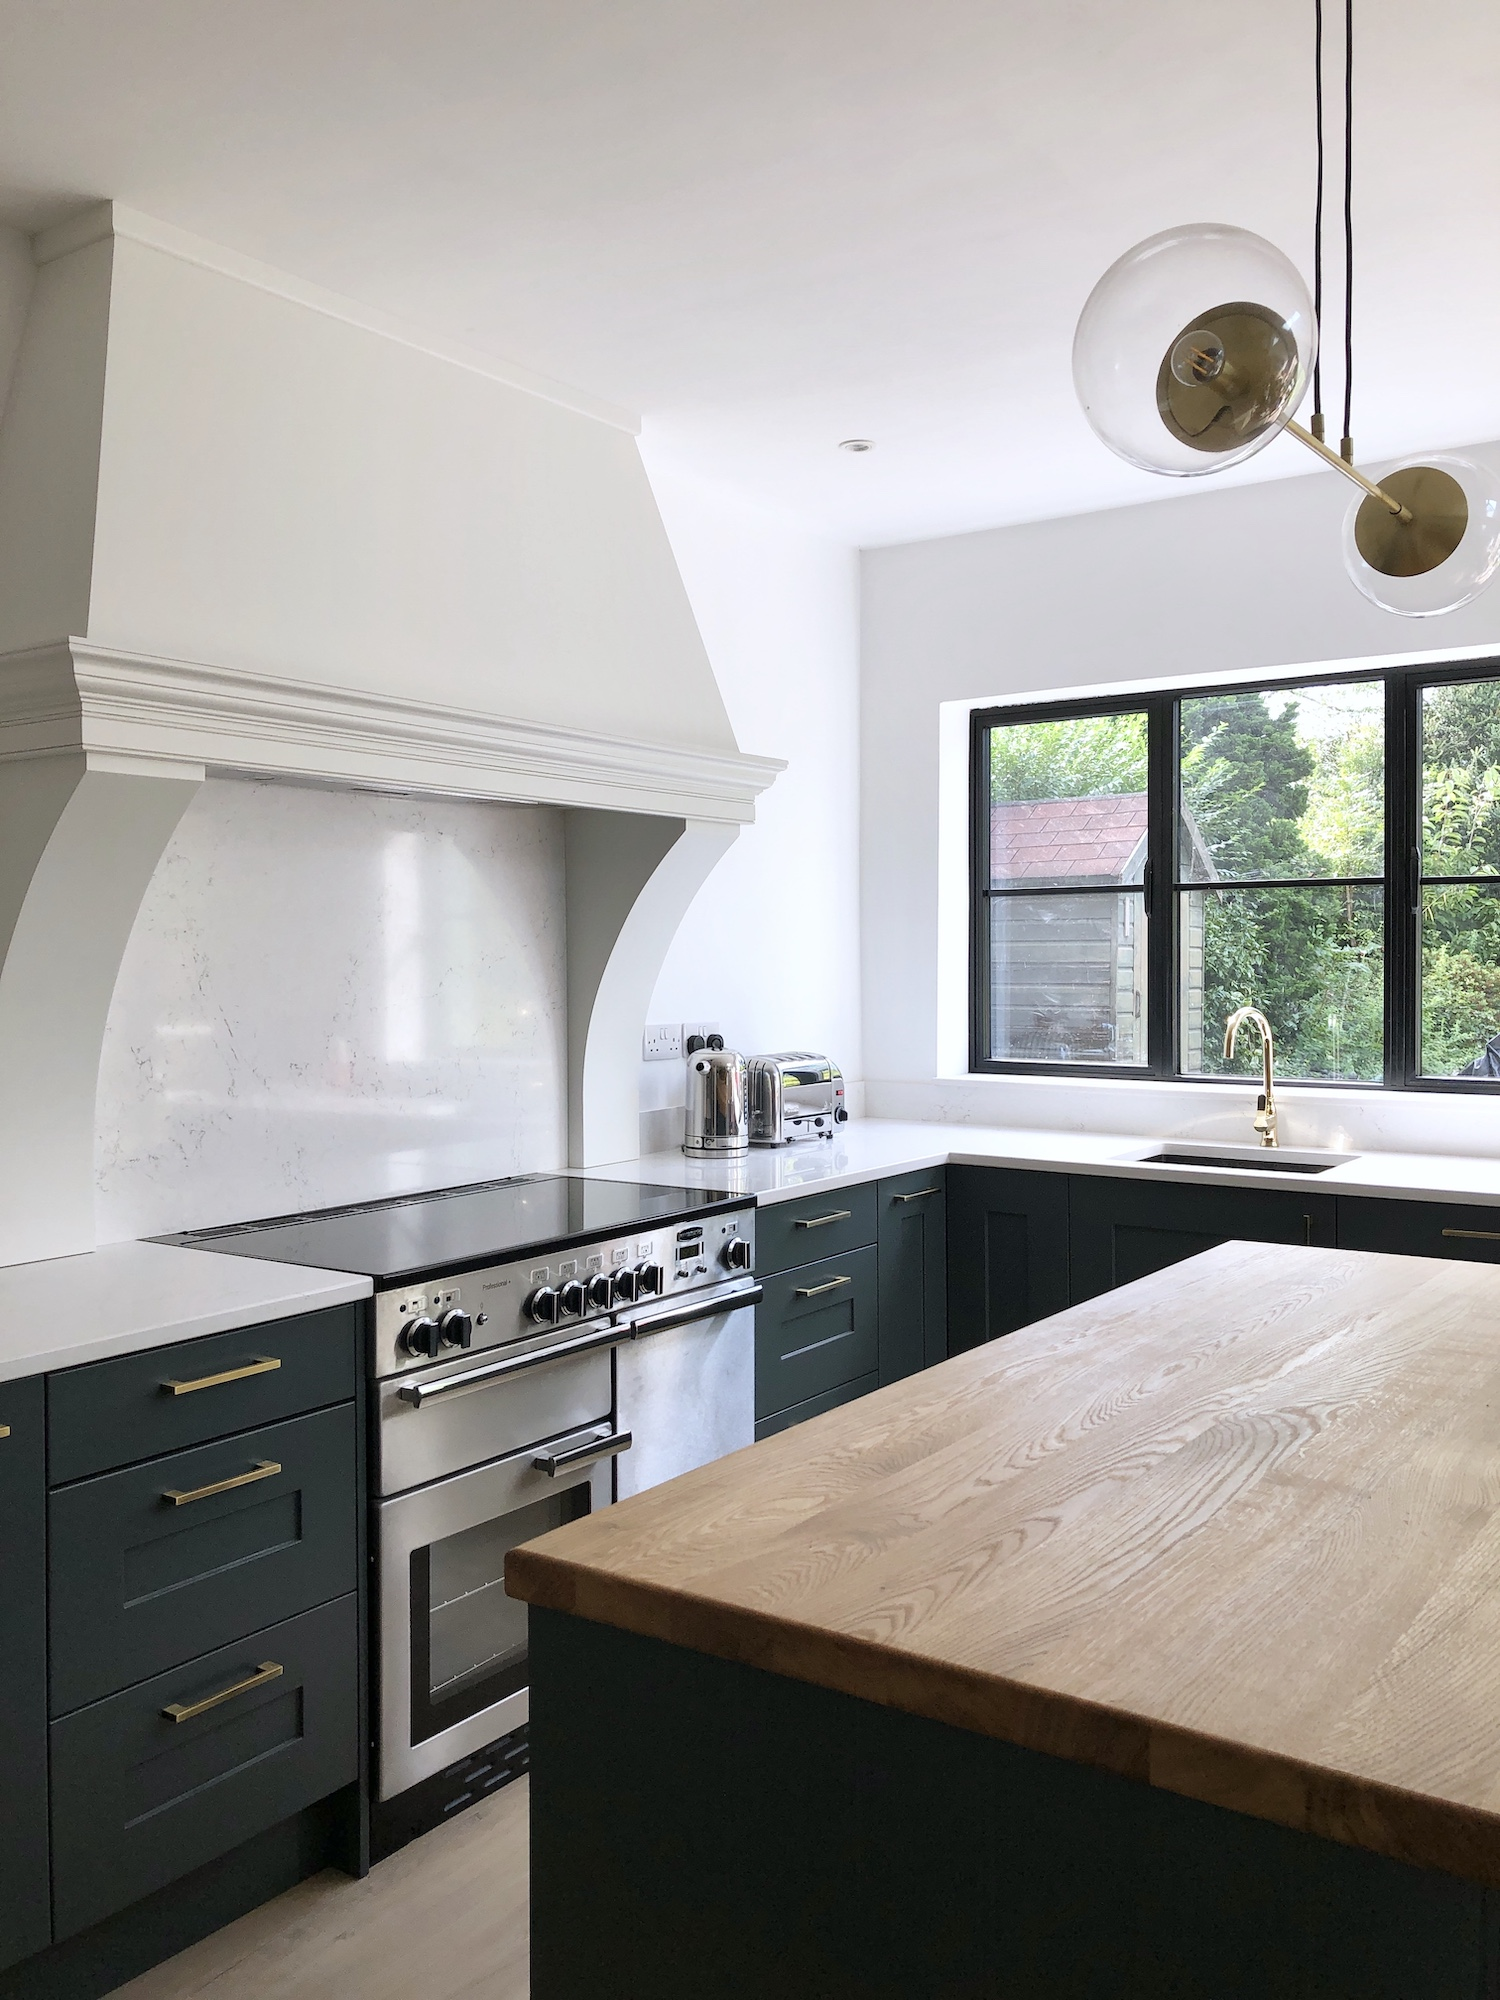 First Sense Interiors - Blue Shaker kitchen with quartz and oak worktops and a custom built extractor chimney hood